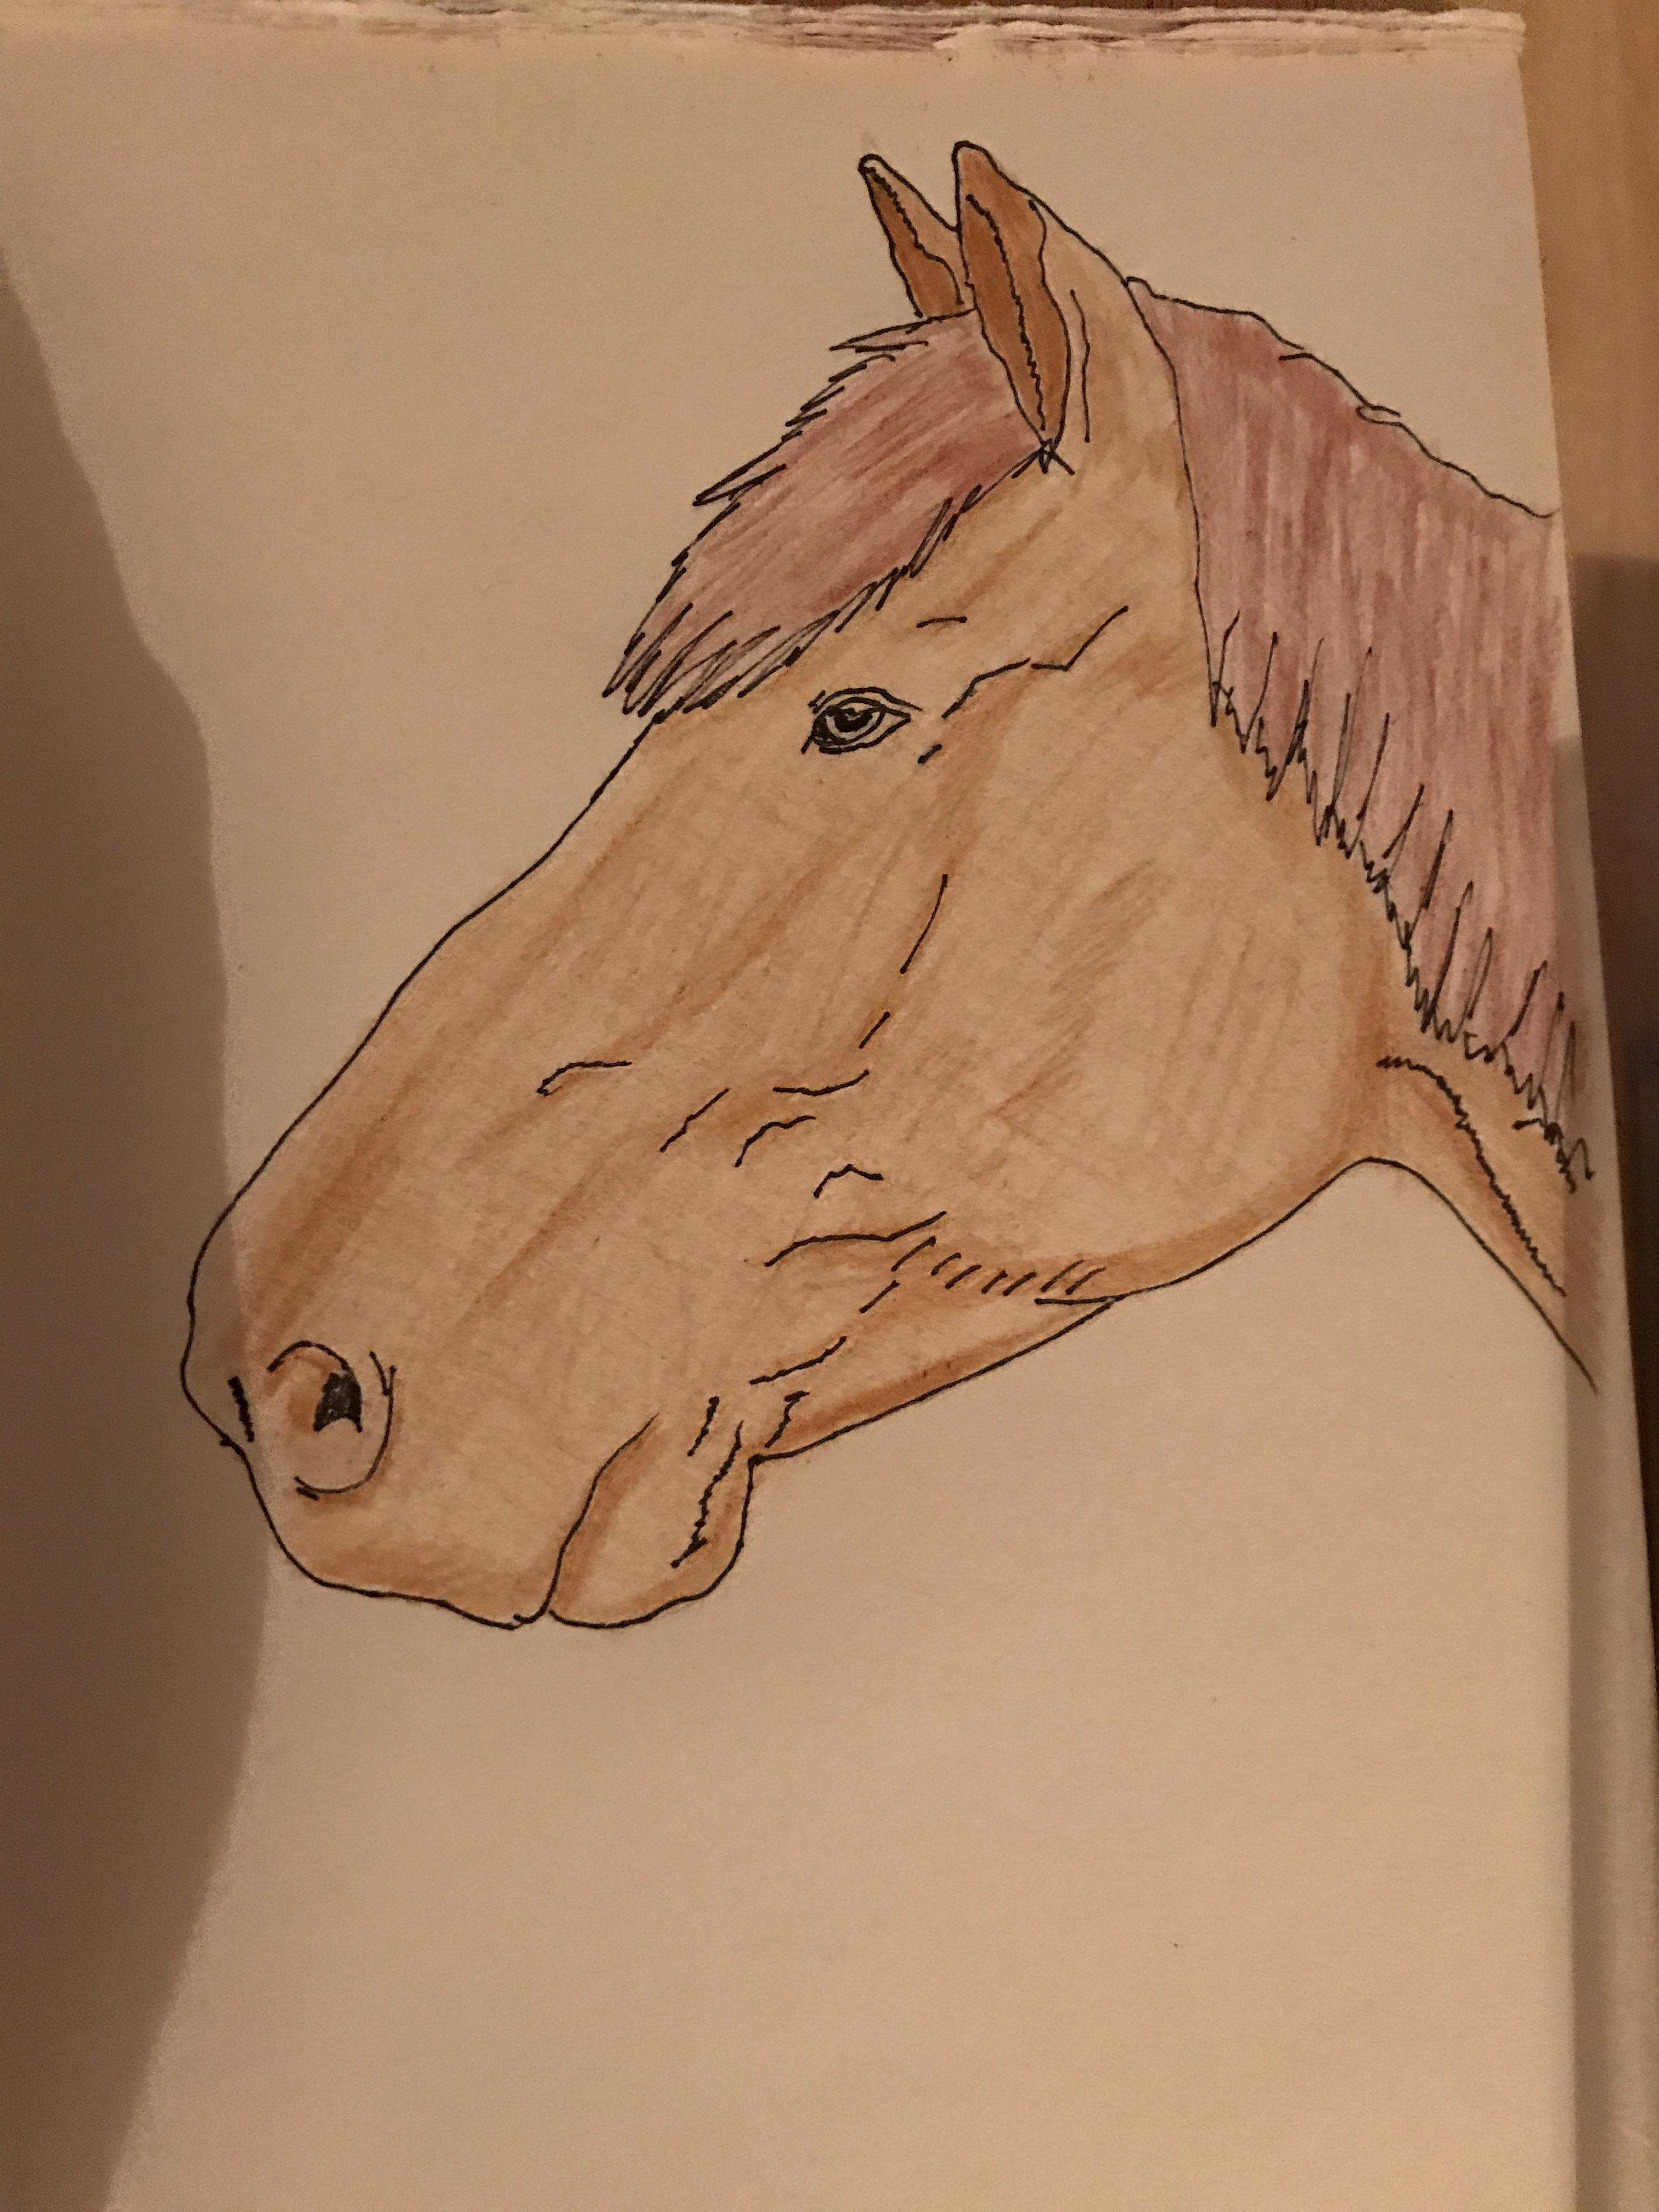 Animal Shading : animal, shading, First, Attempt, Animal, Actual, Using, Colouring, Pencils, Shading., Comments, Advice, Welcome, Learntodraw